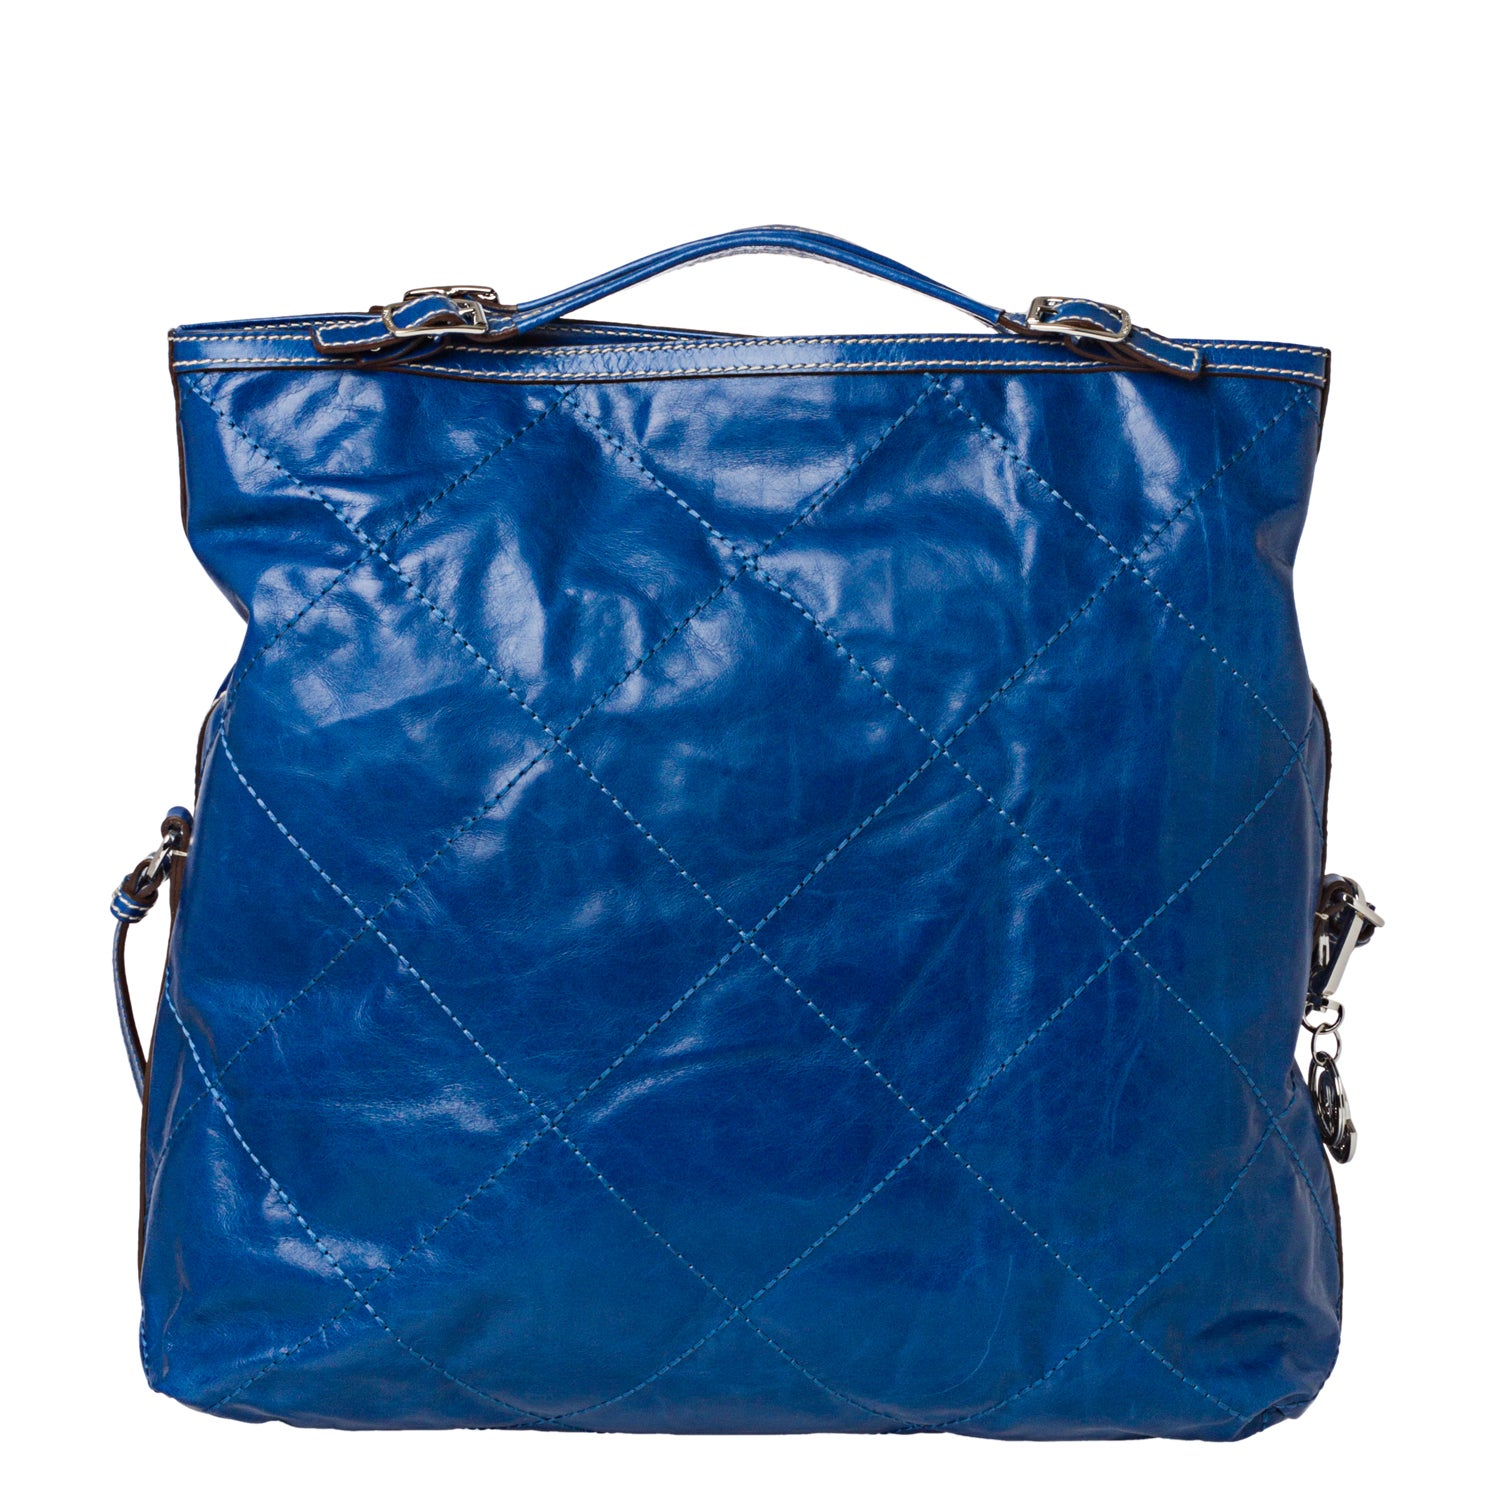 Moncler 'Aurelie' Blue Stitched Leather Tote Bag